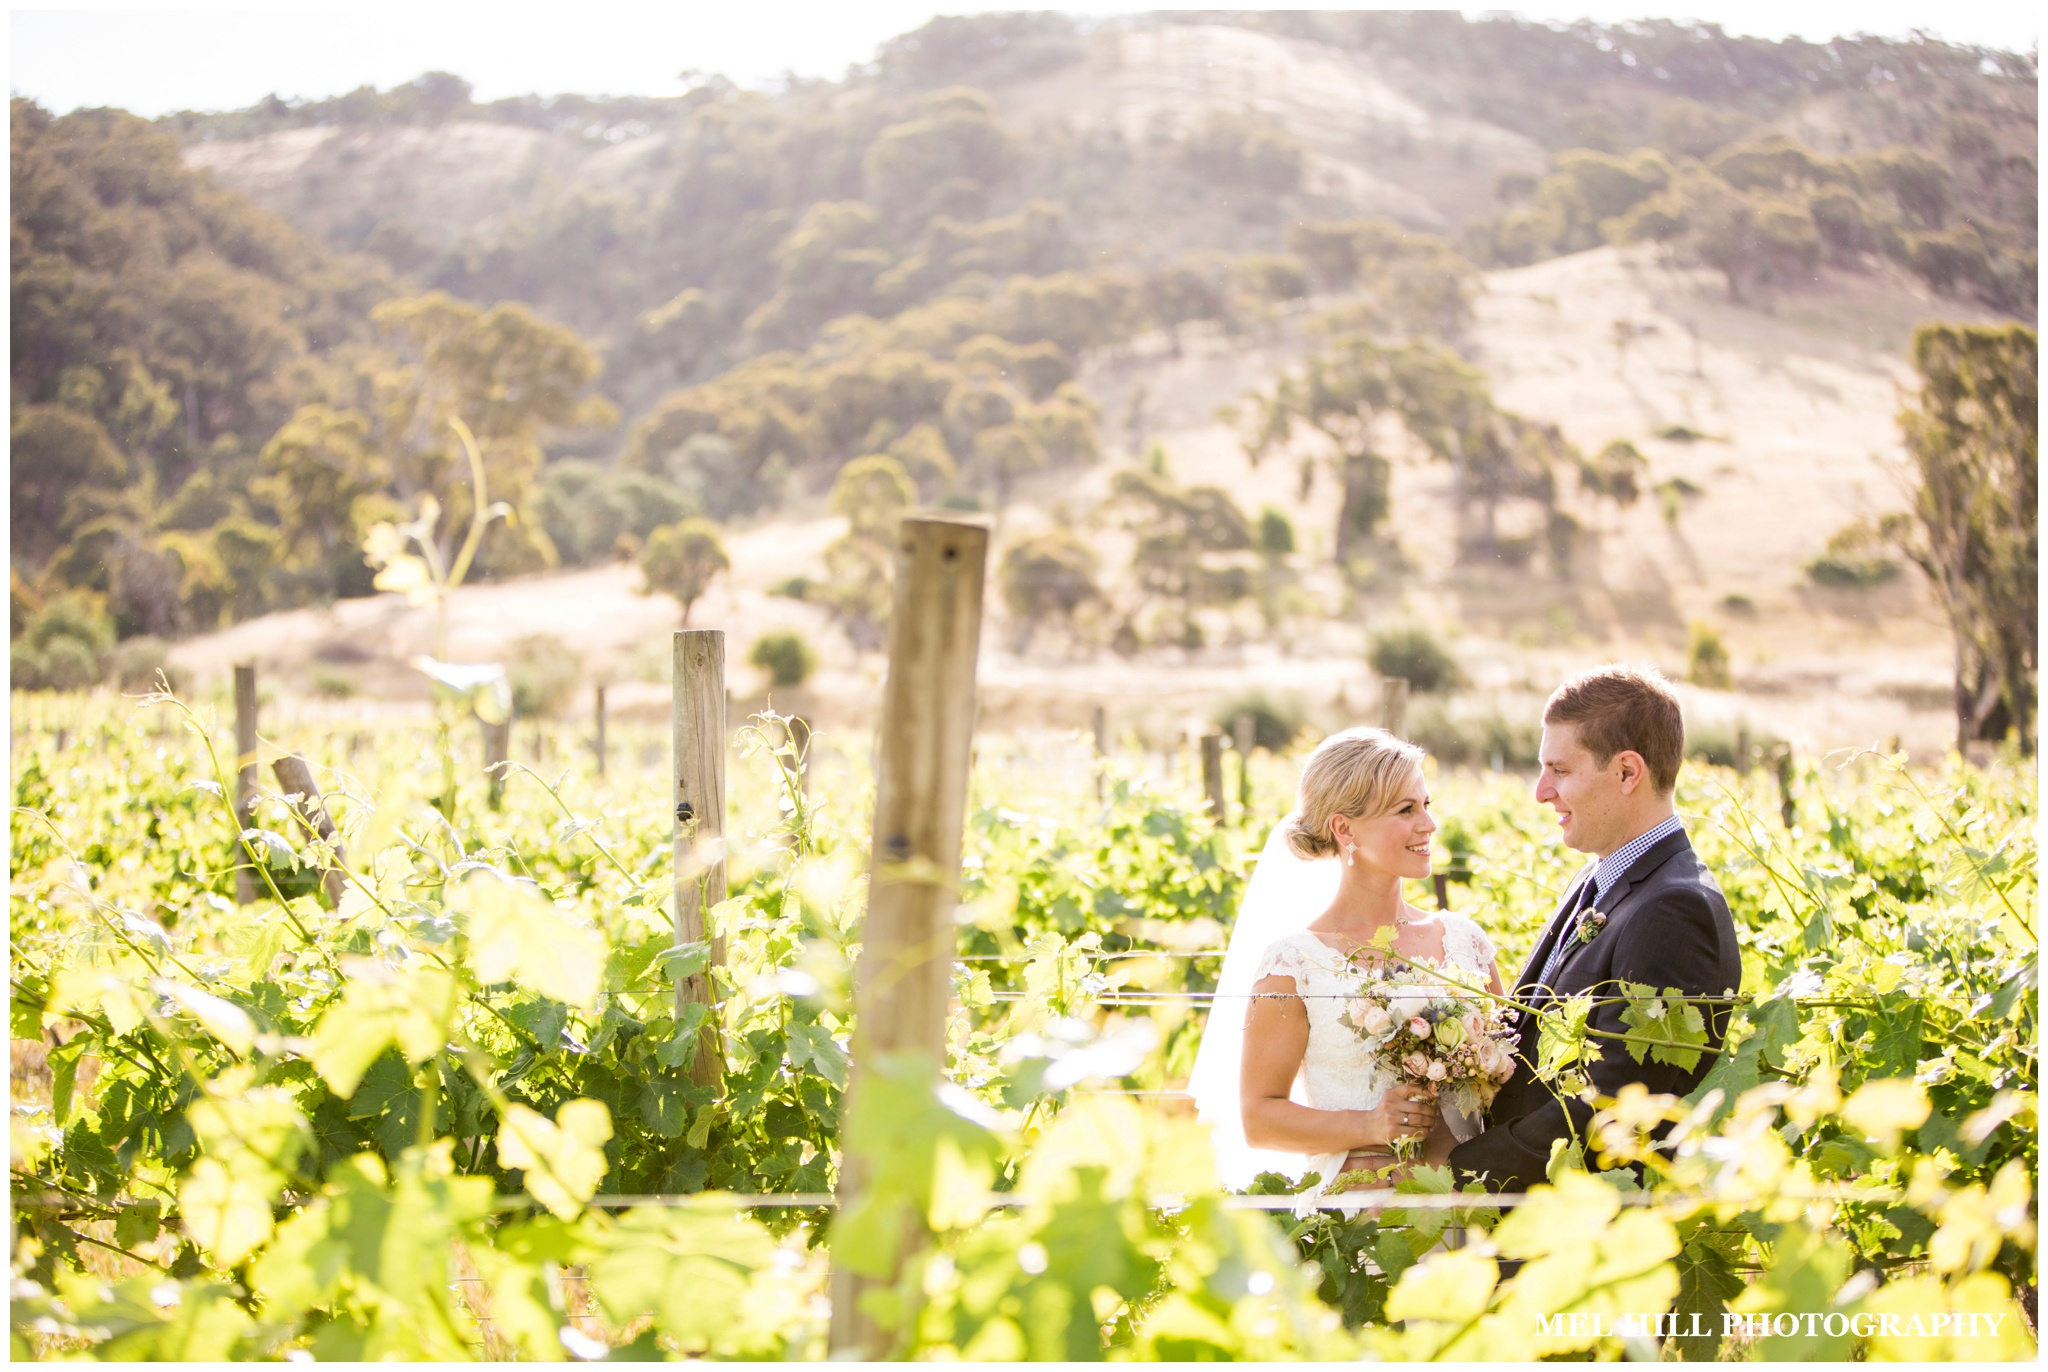 Wedding photography at Lake George Winery near Canberra